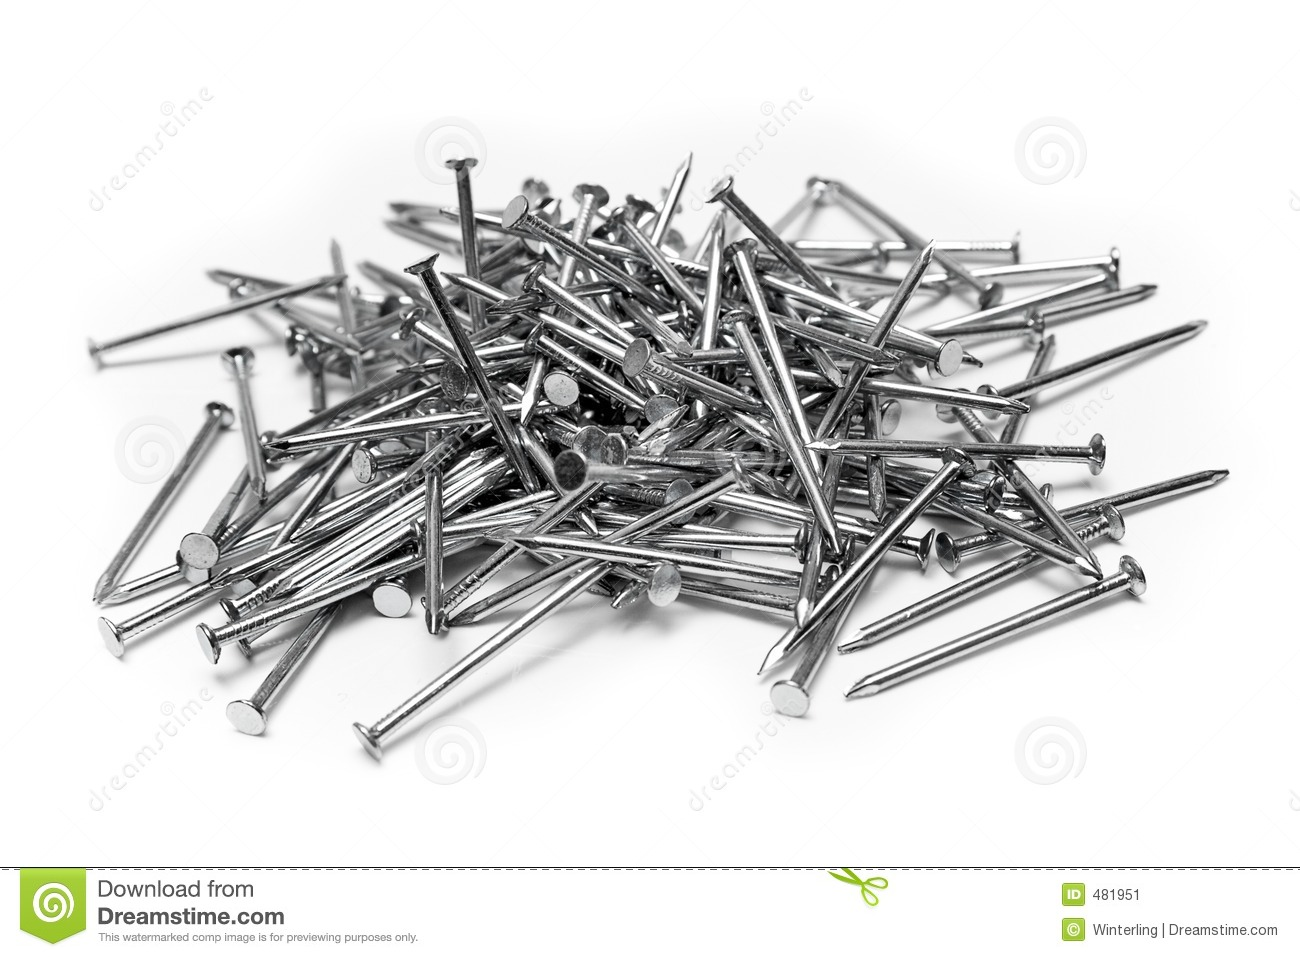 Bunch Of Nails Stock Image